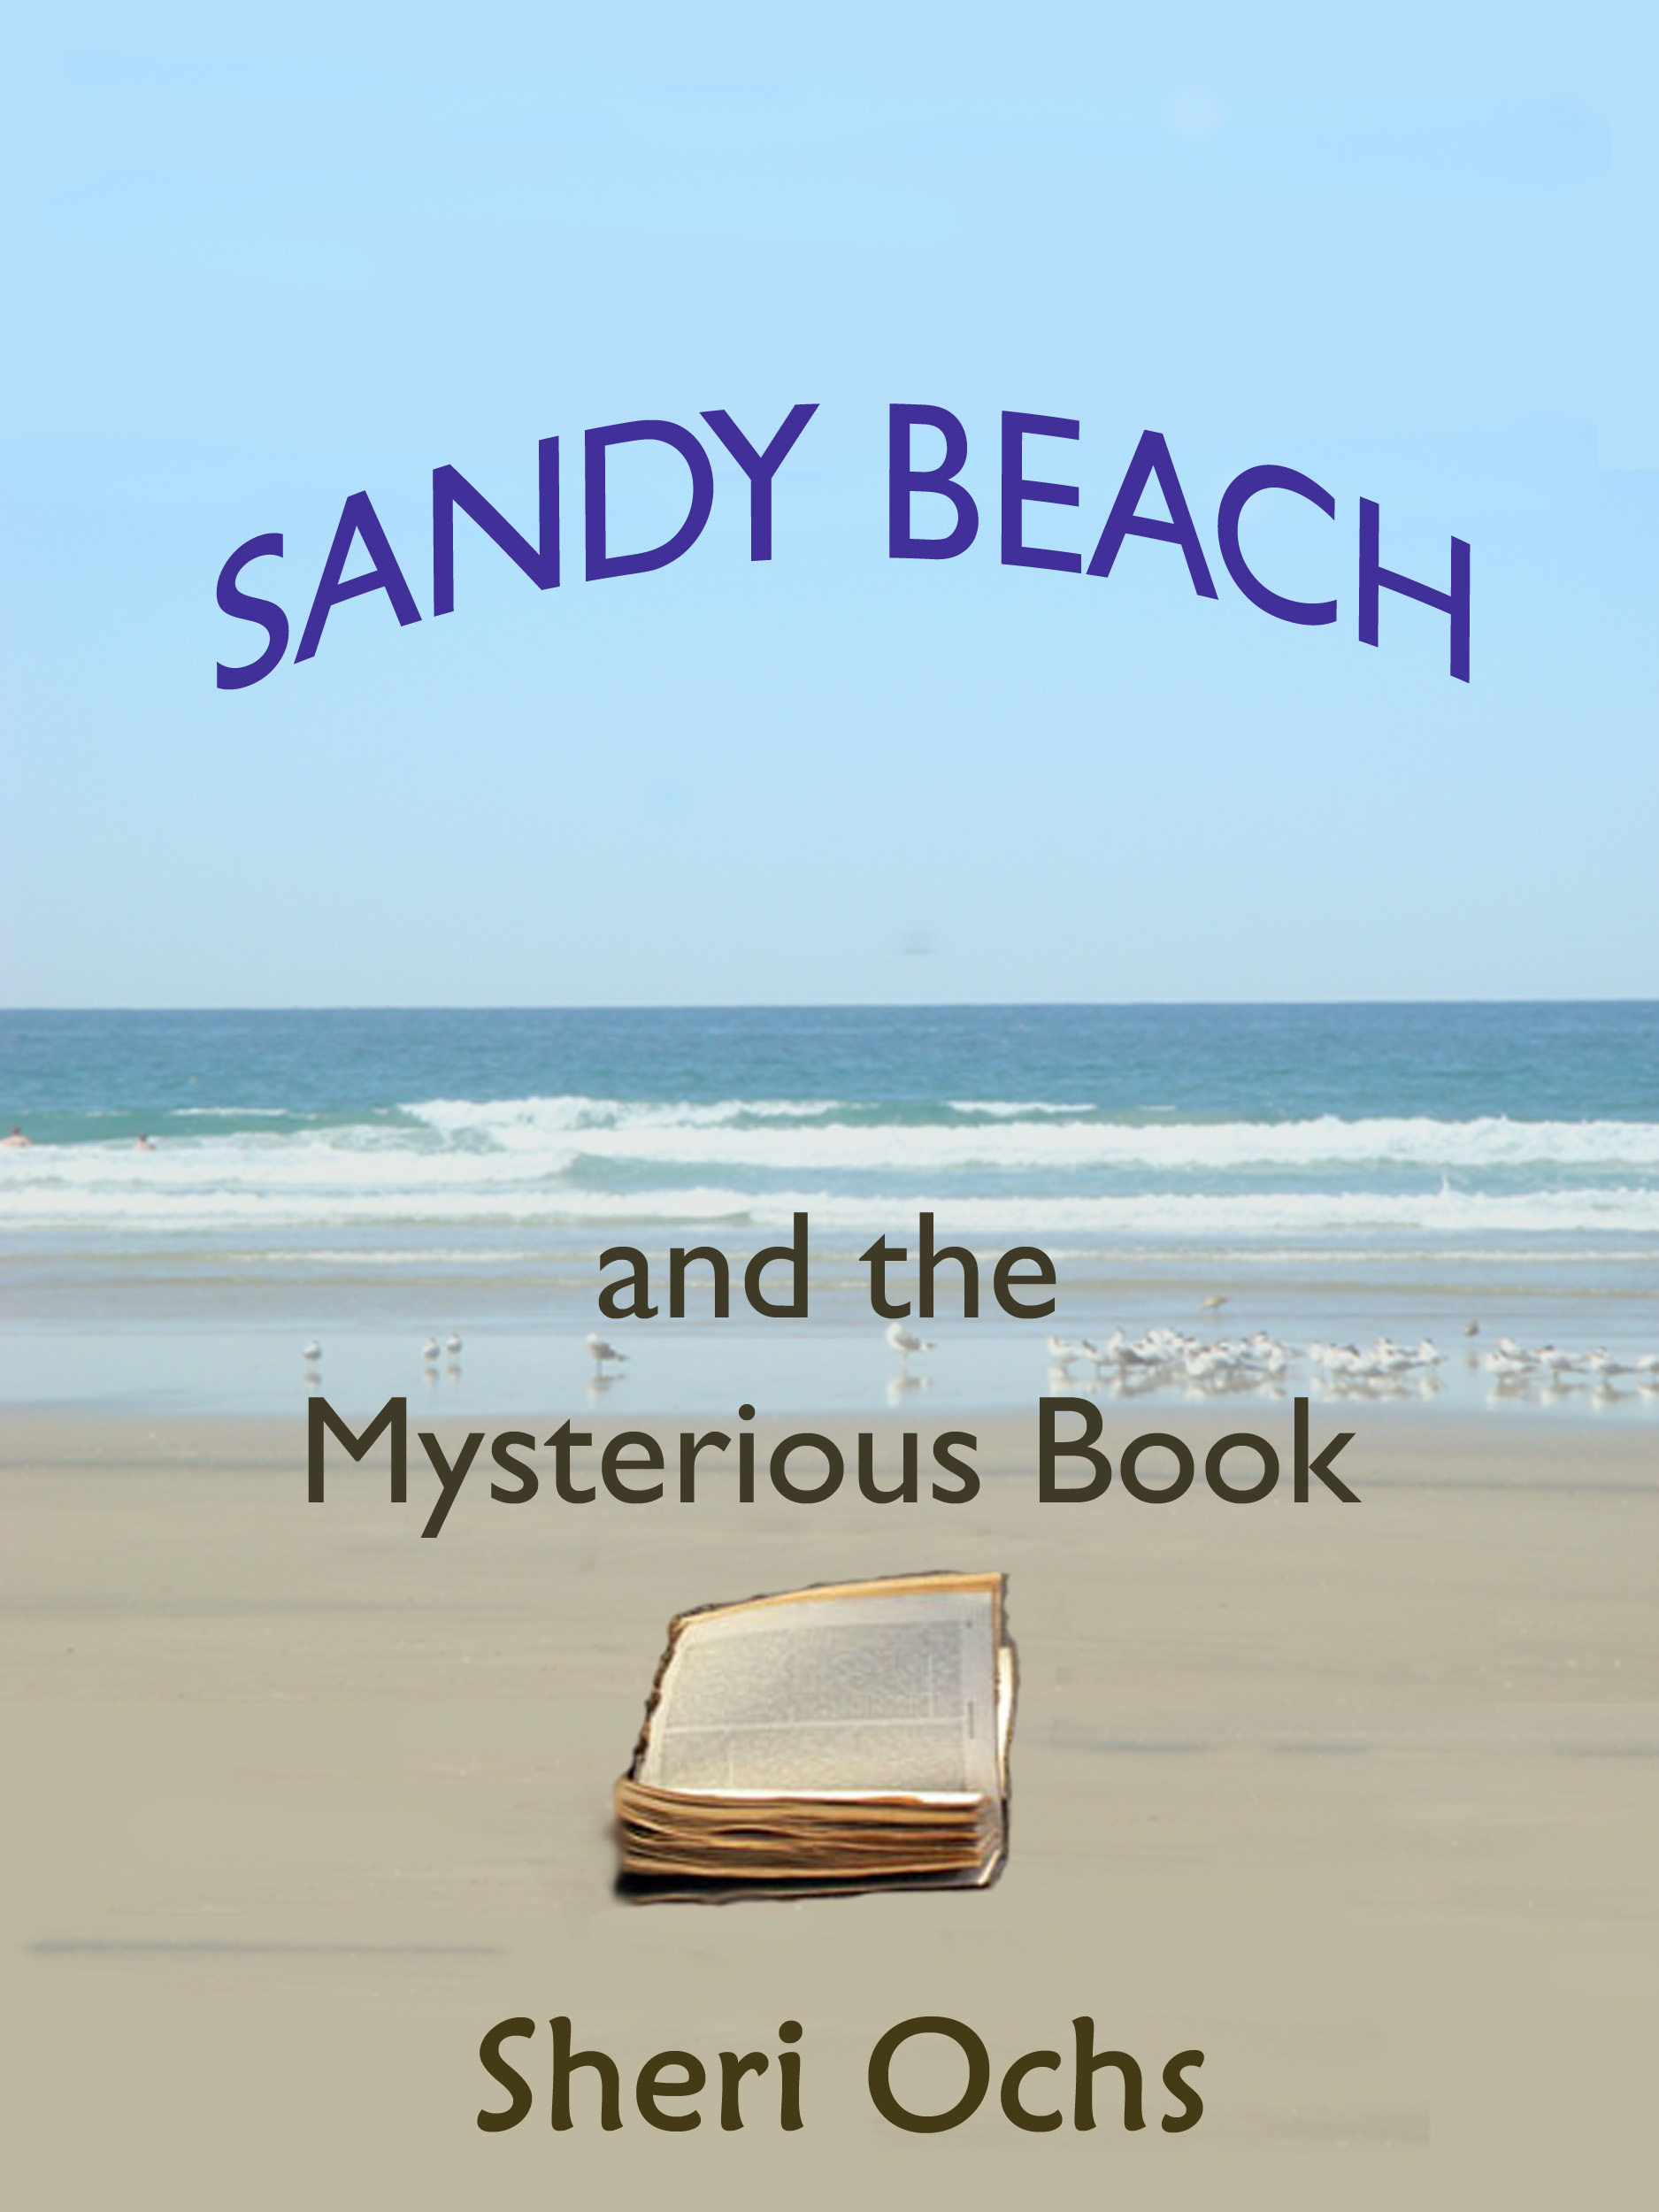 Sandy Beach and the Mysterious Book